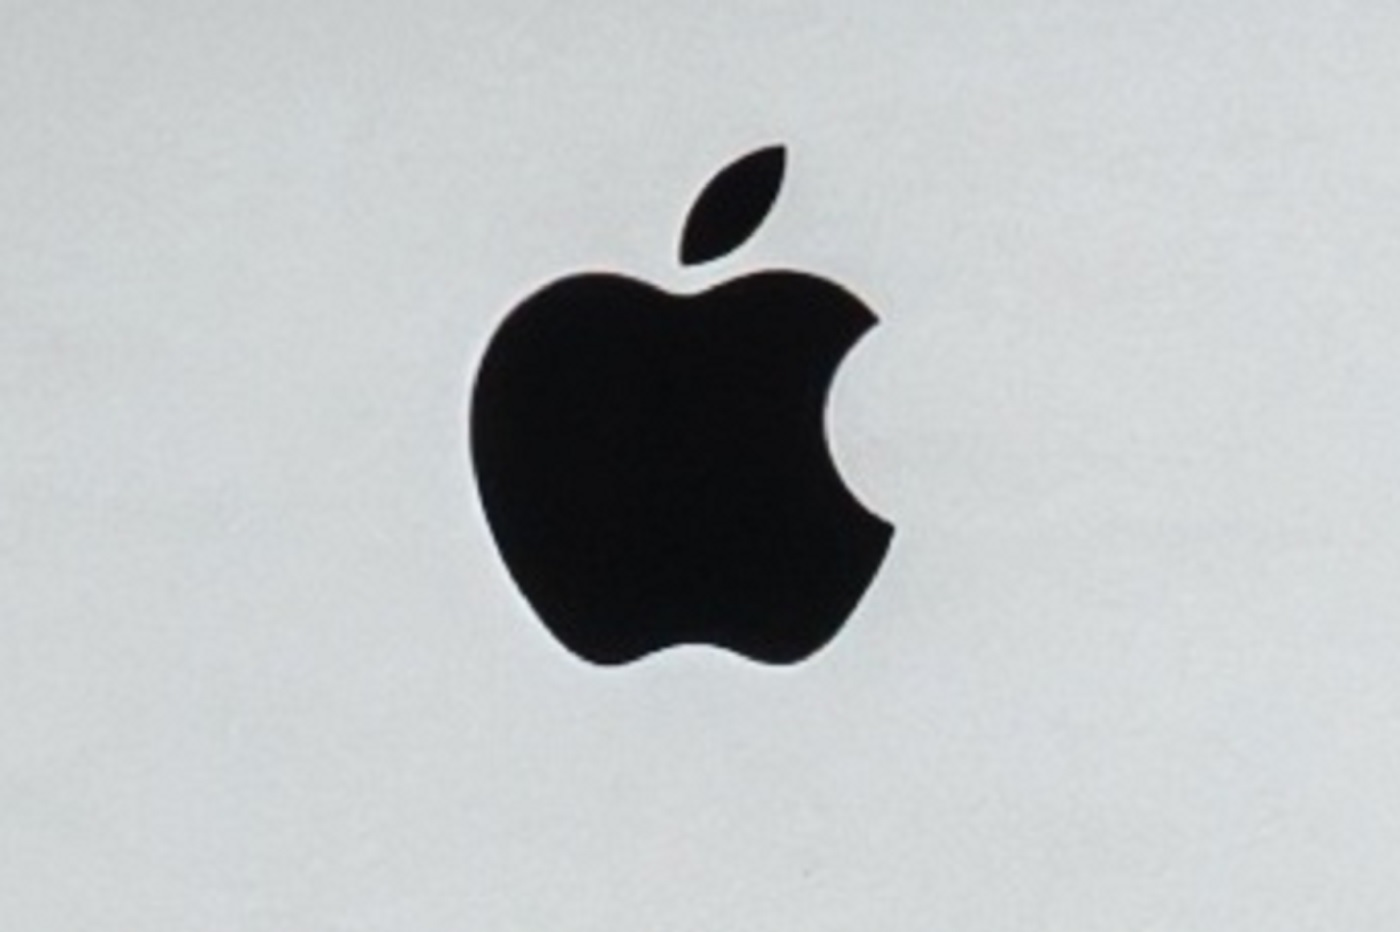 Le logo d'Apple sur un PC